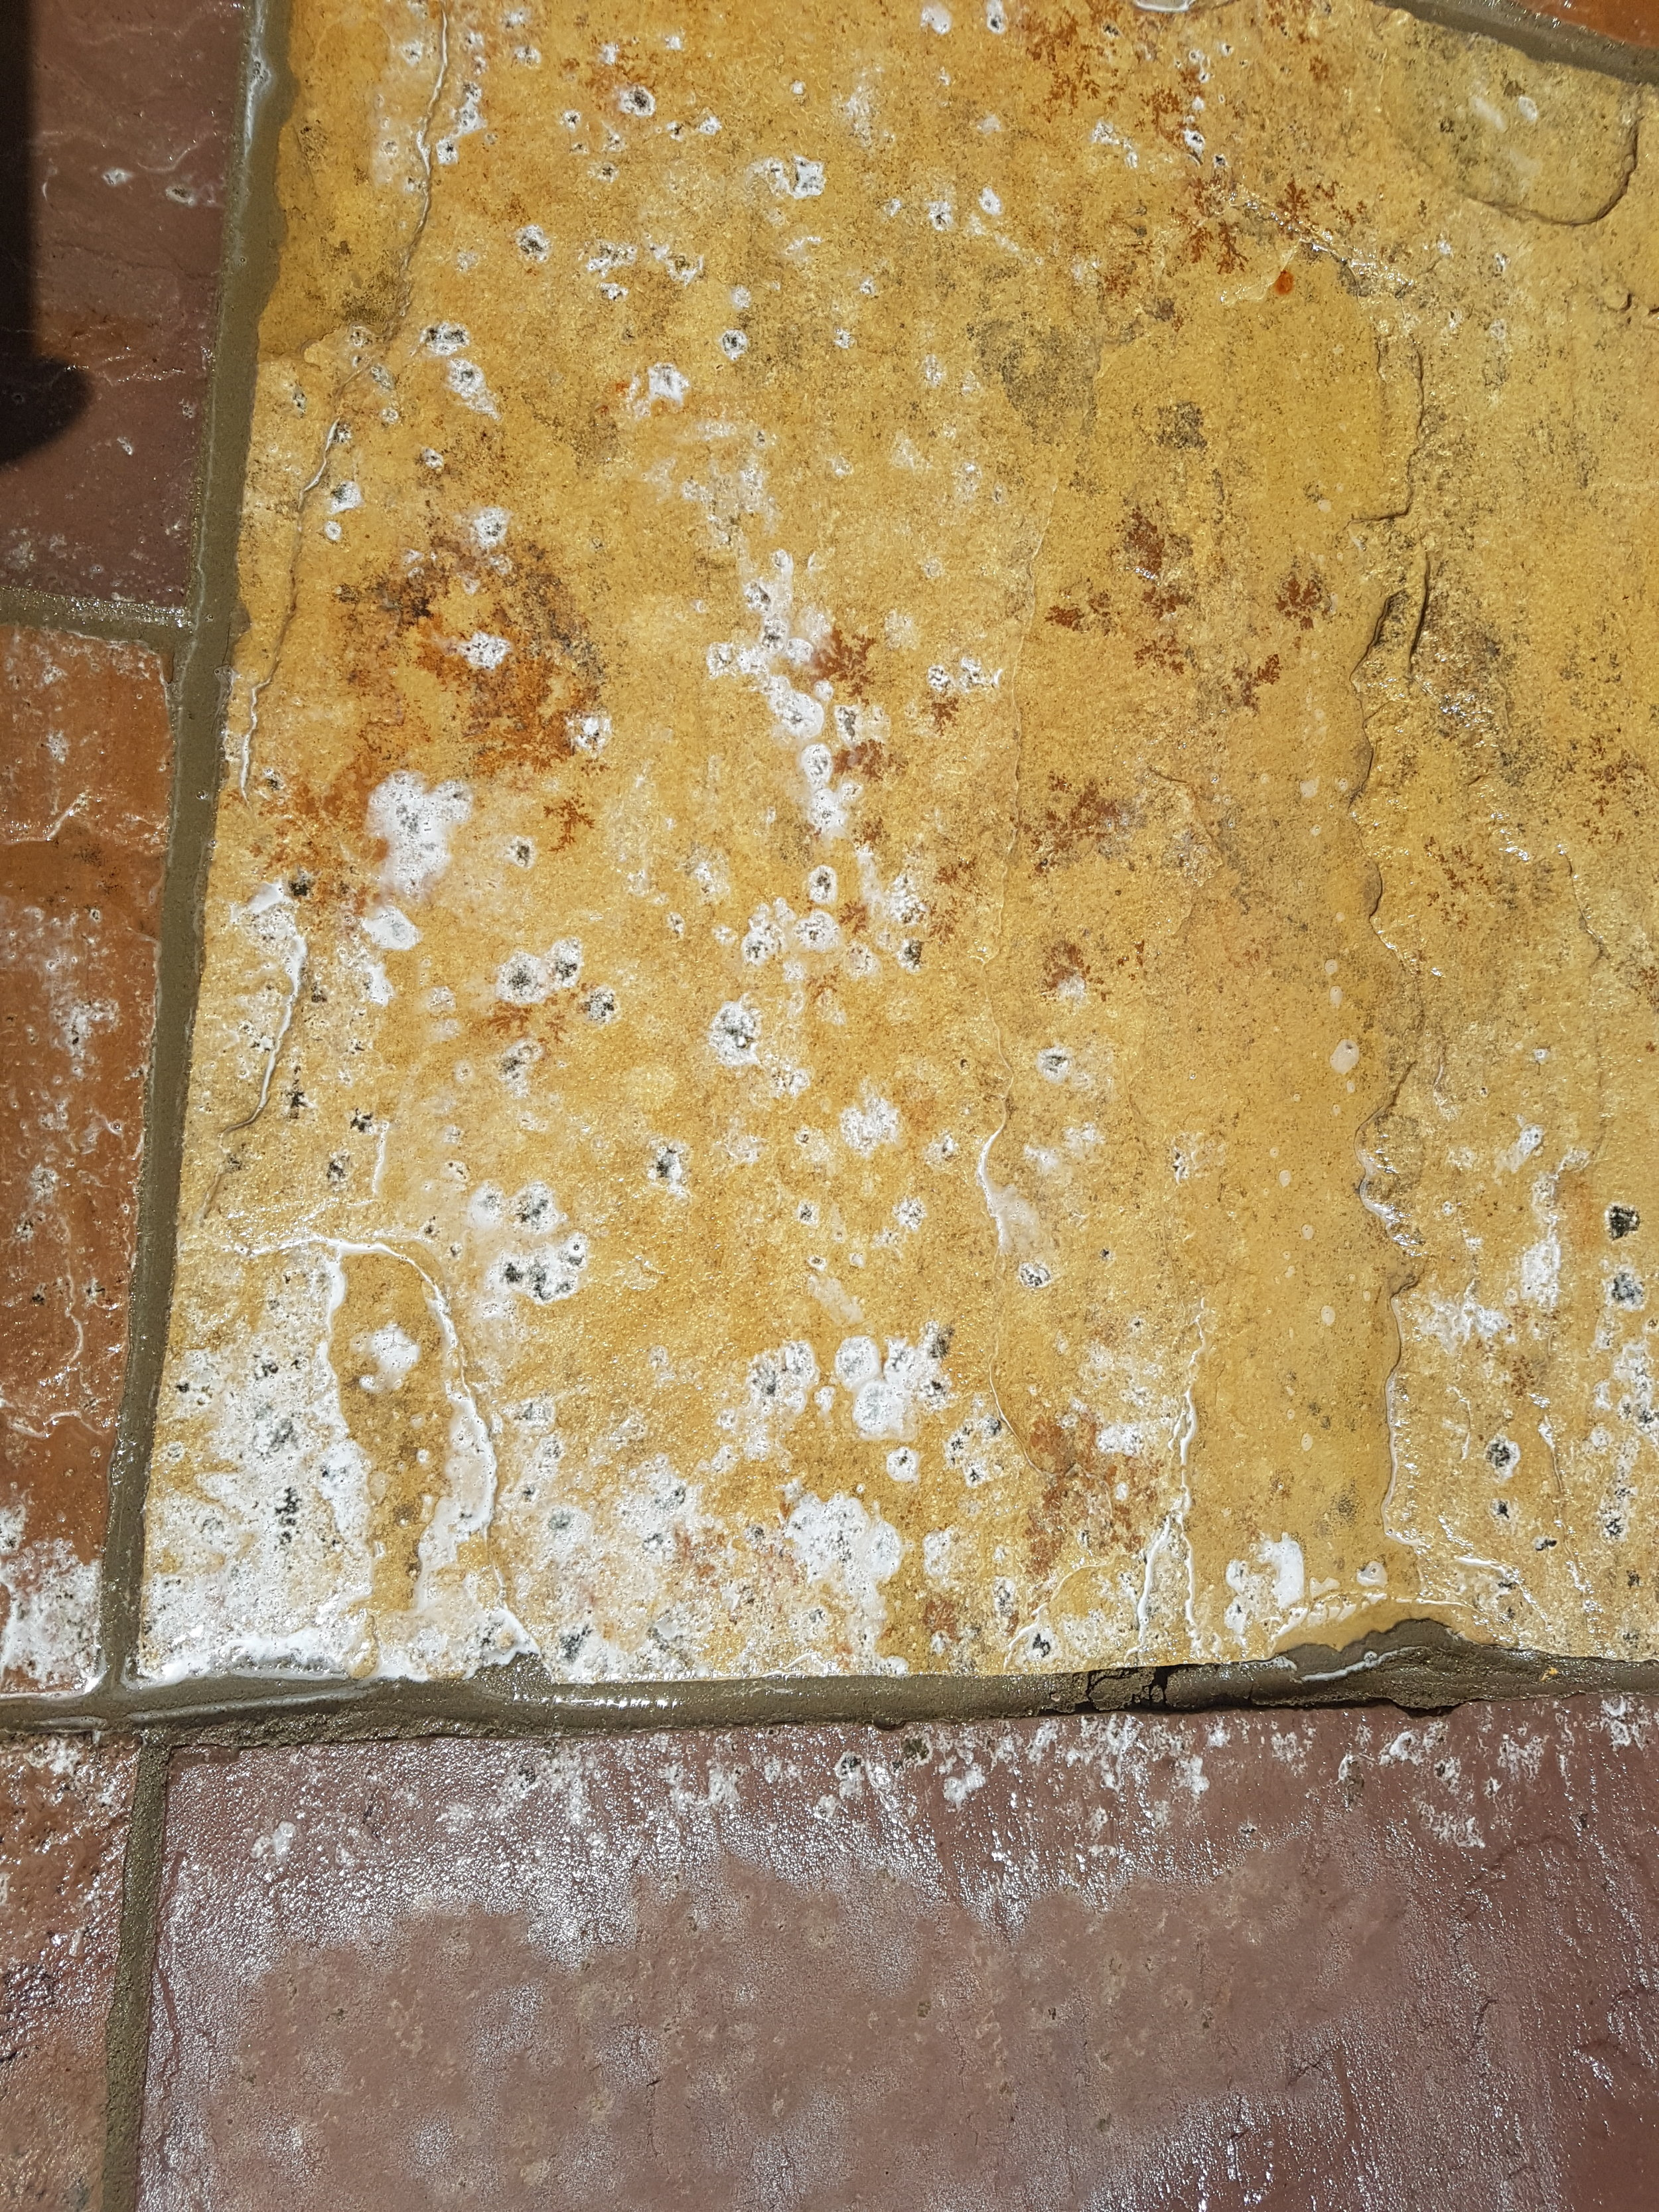 Horrible little black spots being eaten alive in minutes. - Contact Captain Jetwash if you want rid of those little black lichen spots from your patio.